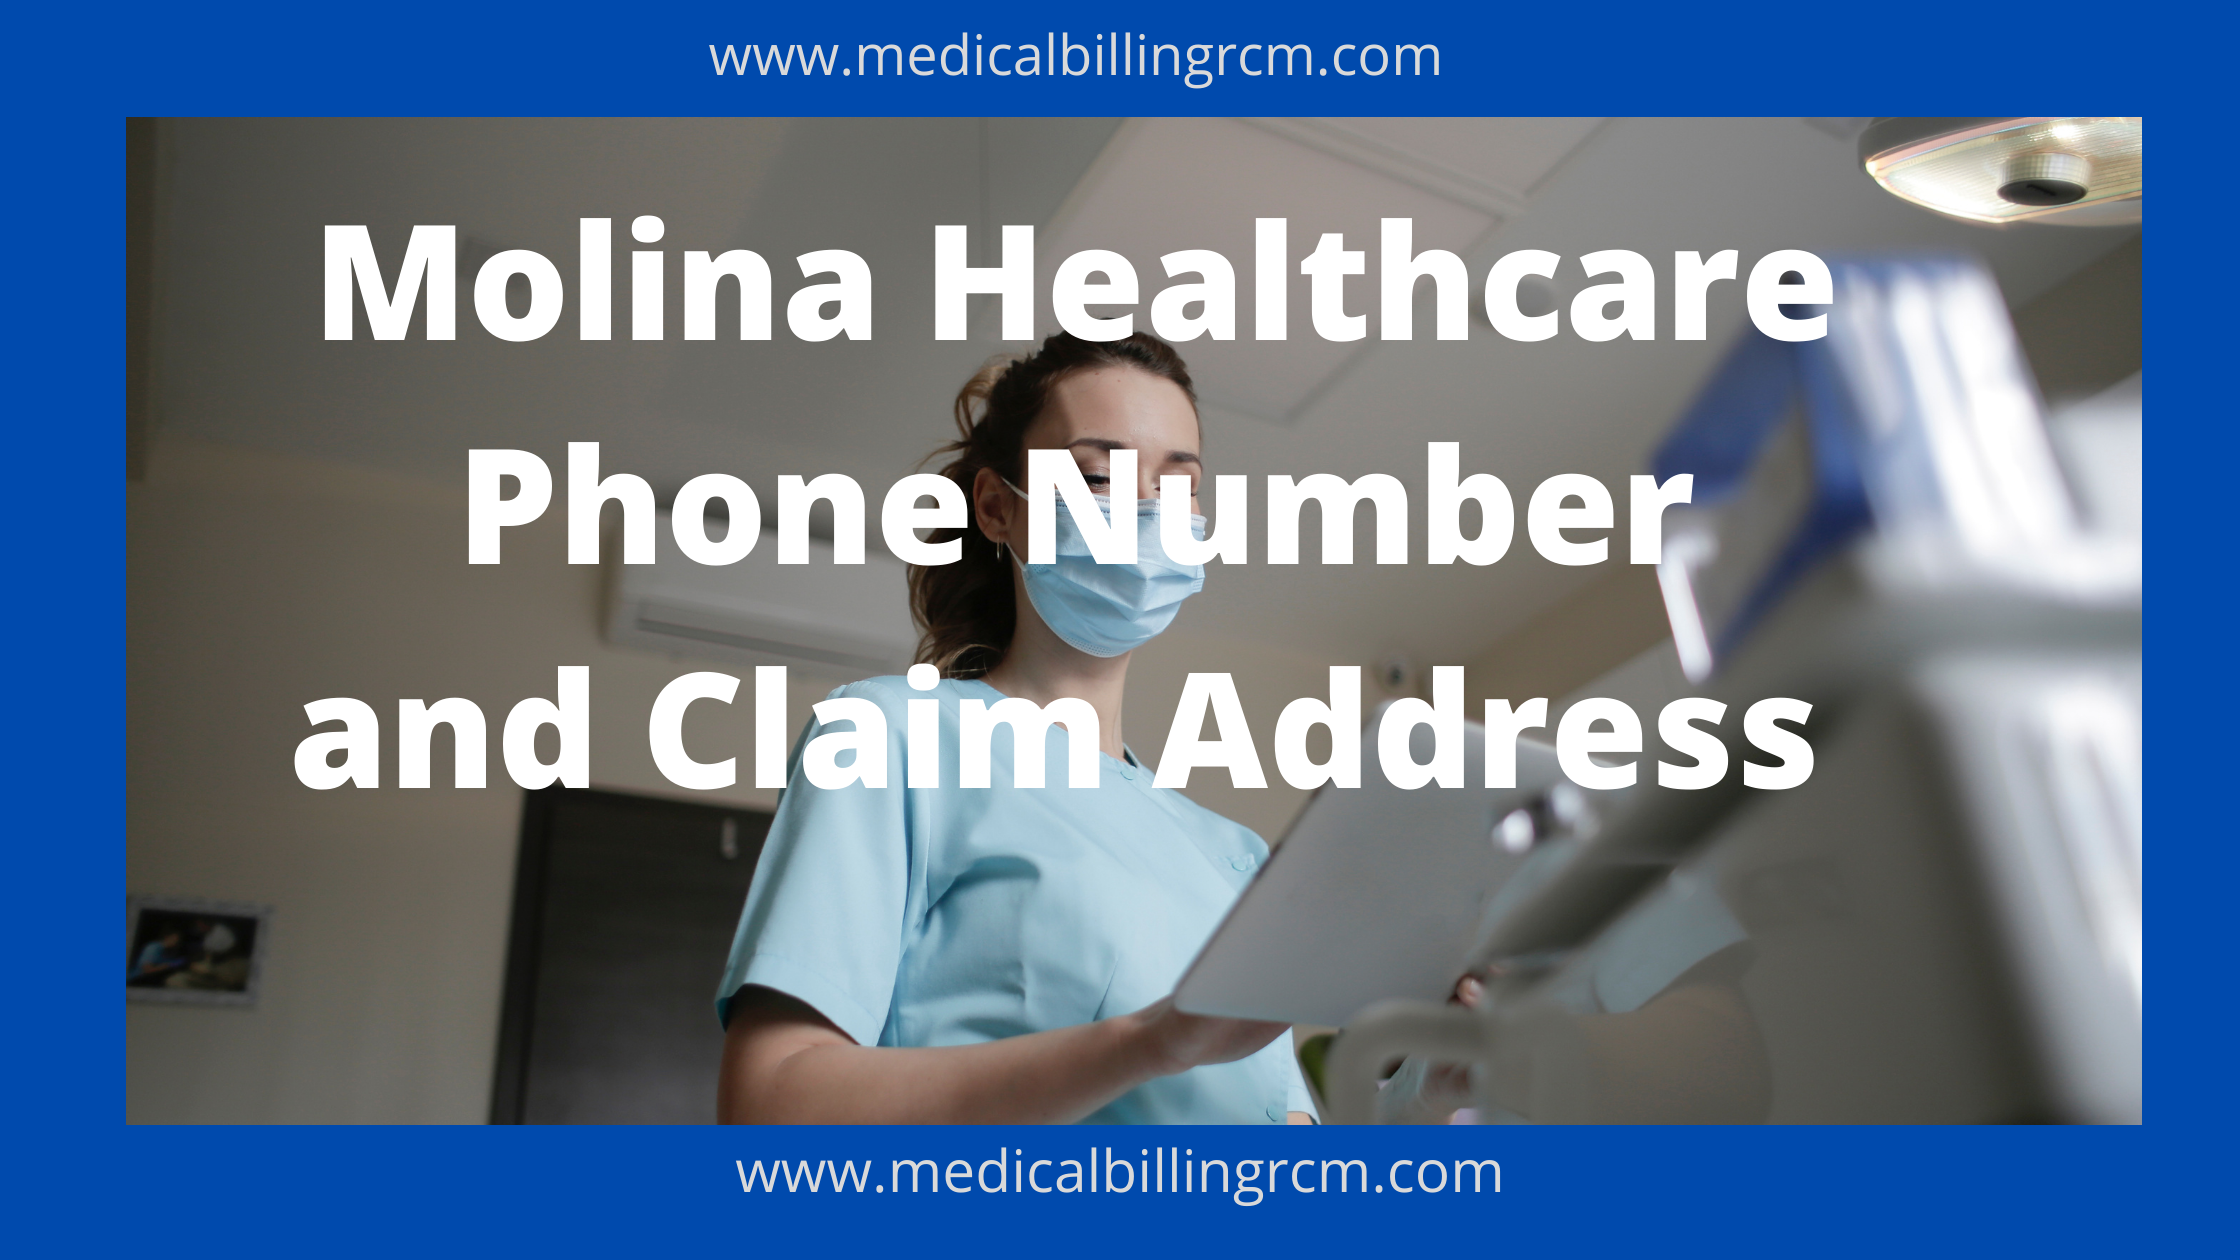 Molina Healthcare Phone numbers and claim addresses